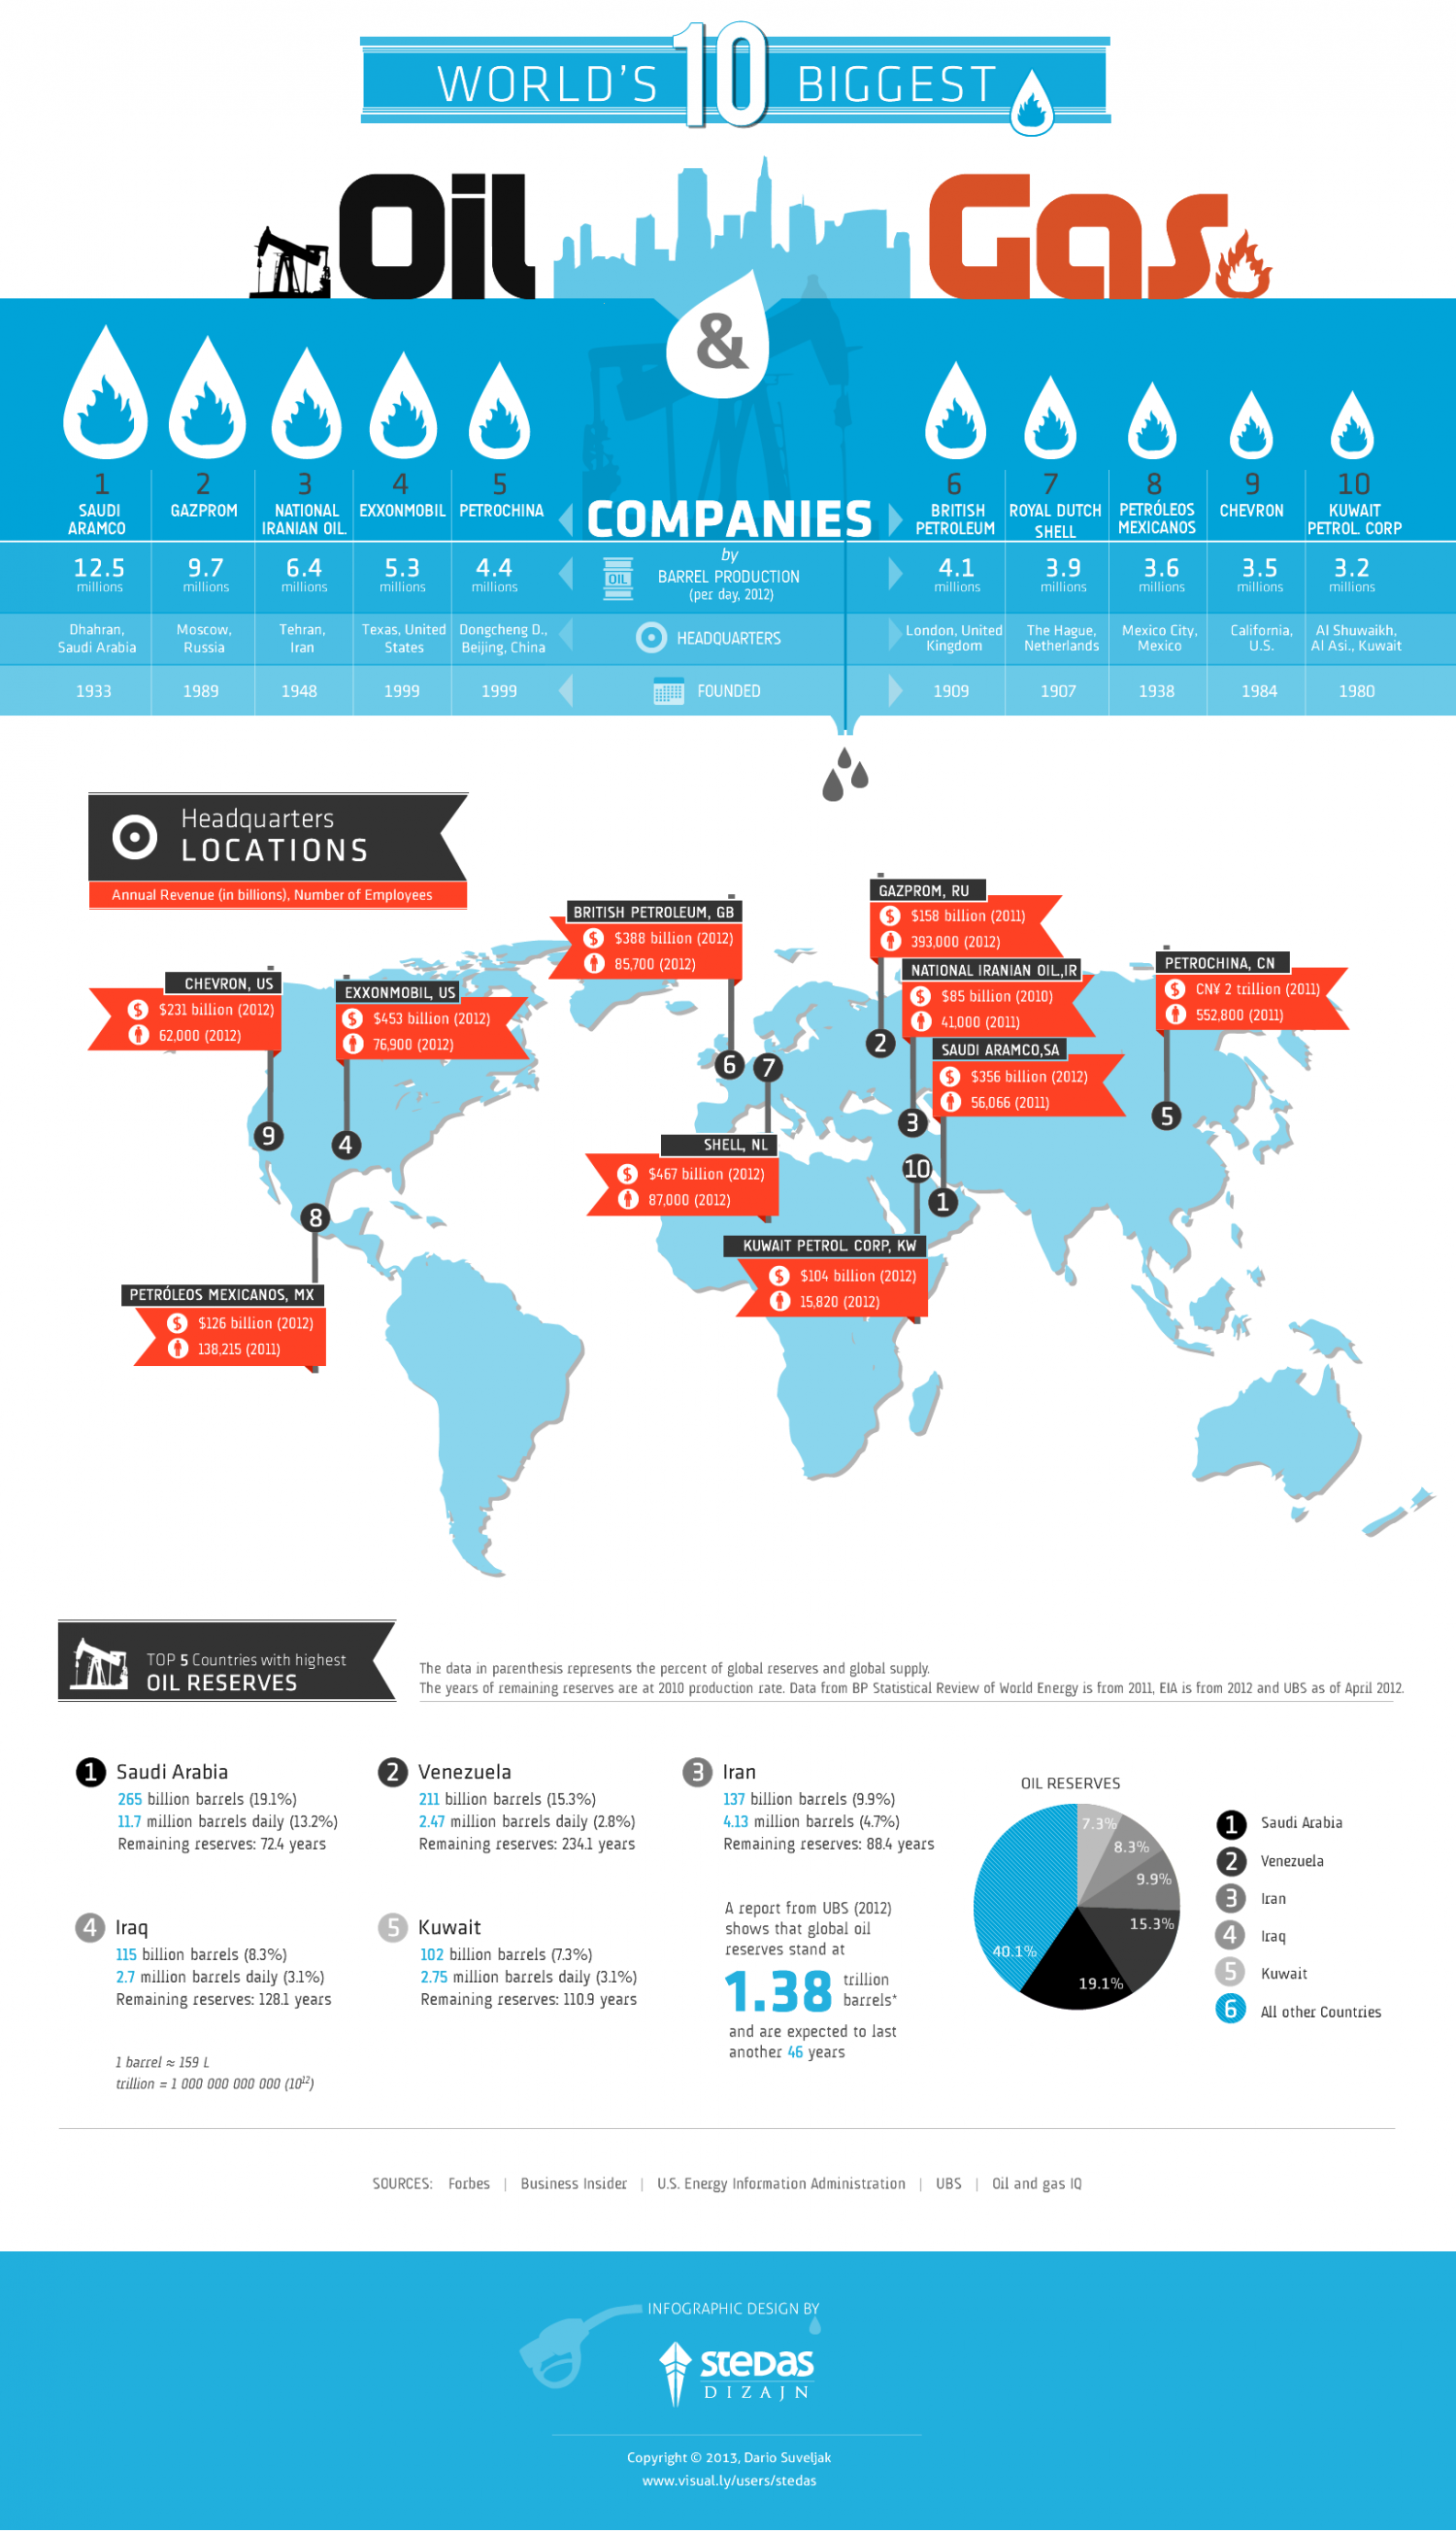 The World's Biggest Oil & Gas Companies Infographic